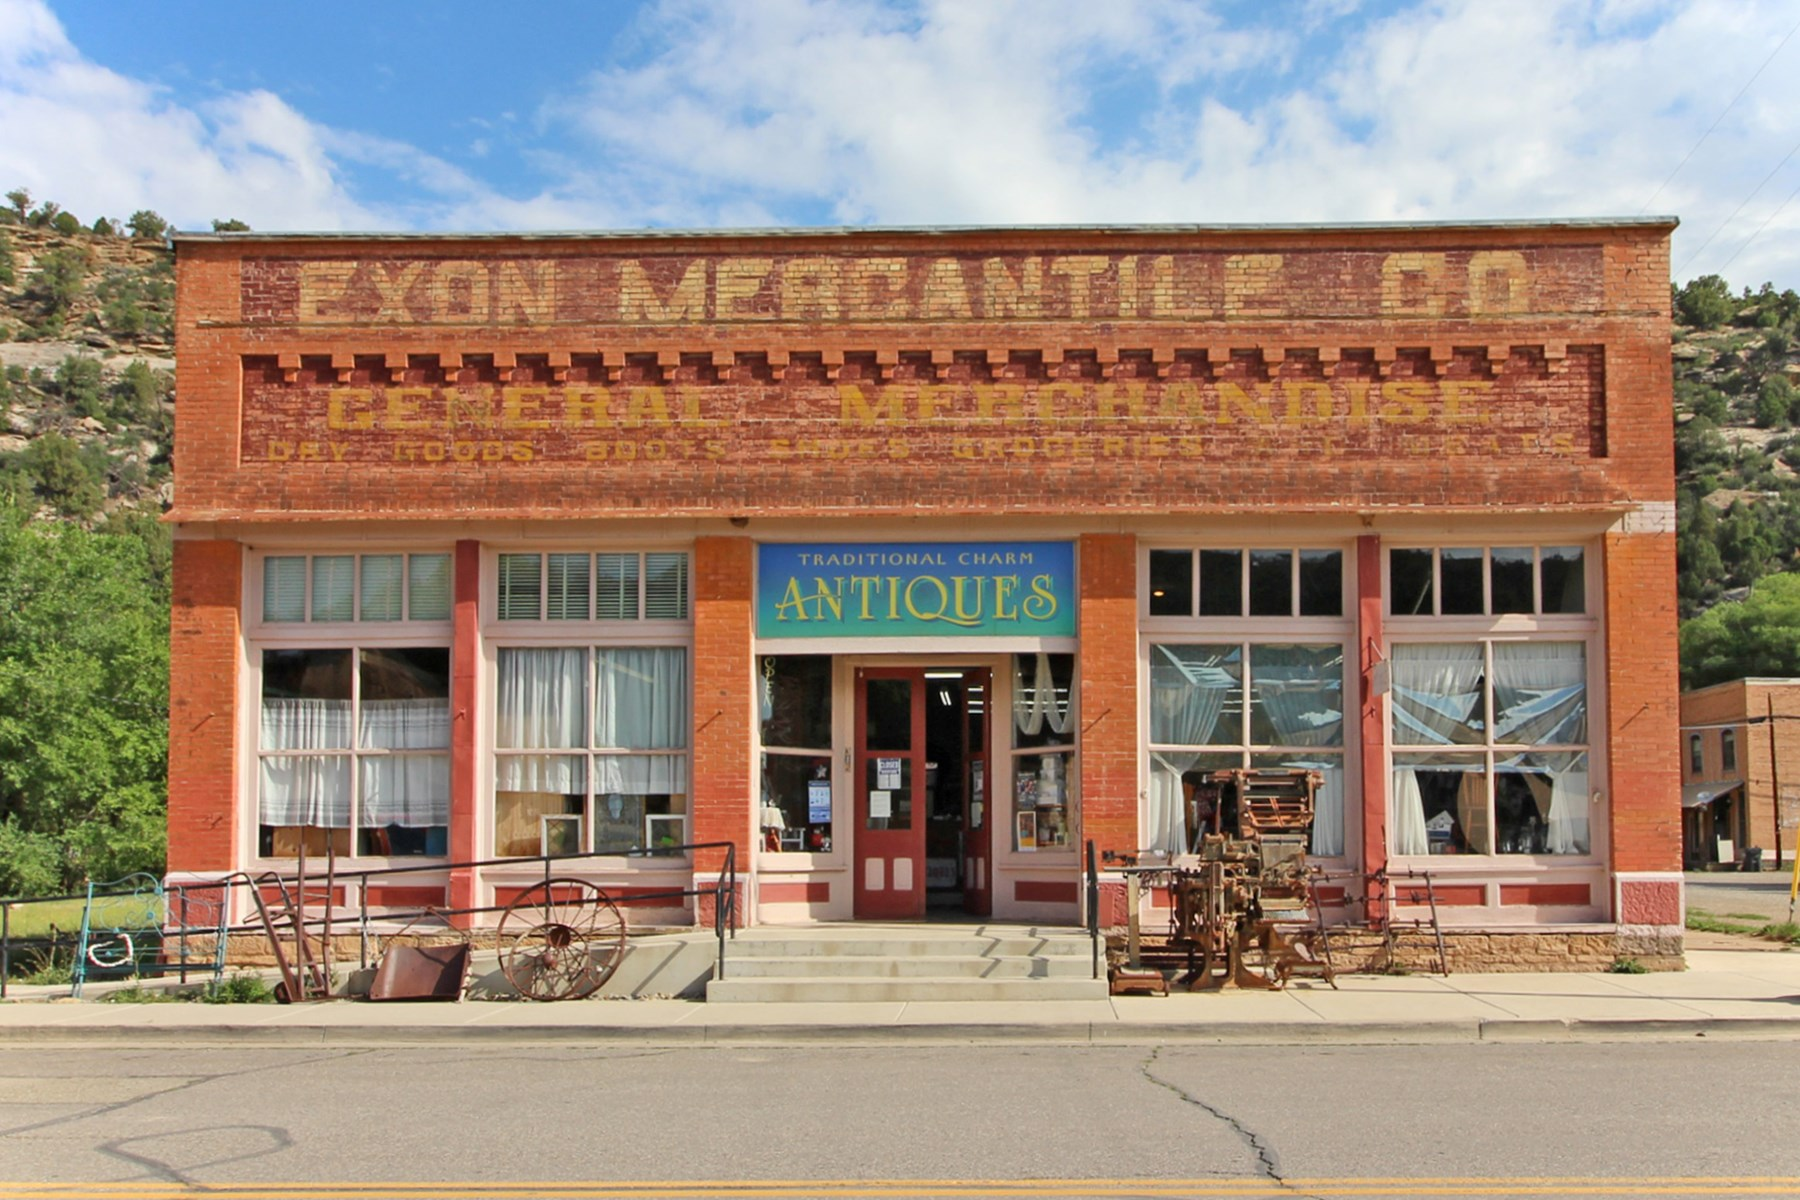 Historic building and business opportunity in Dolores, CO